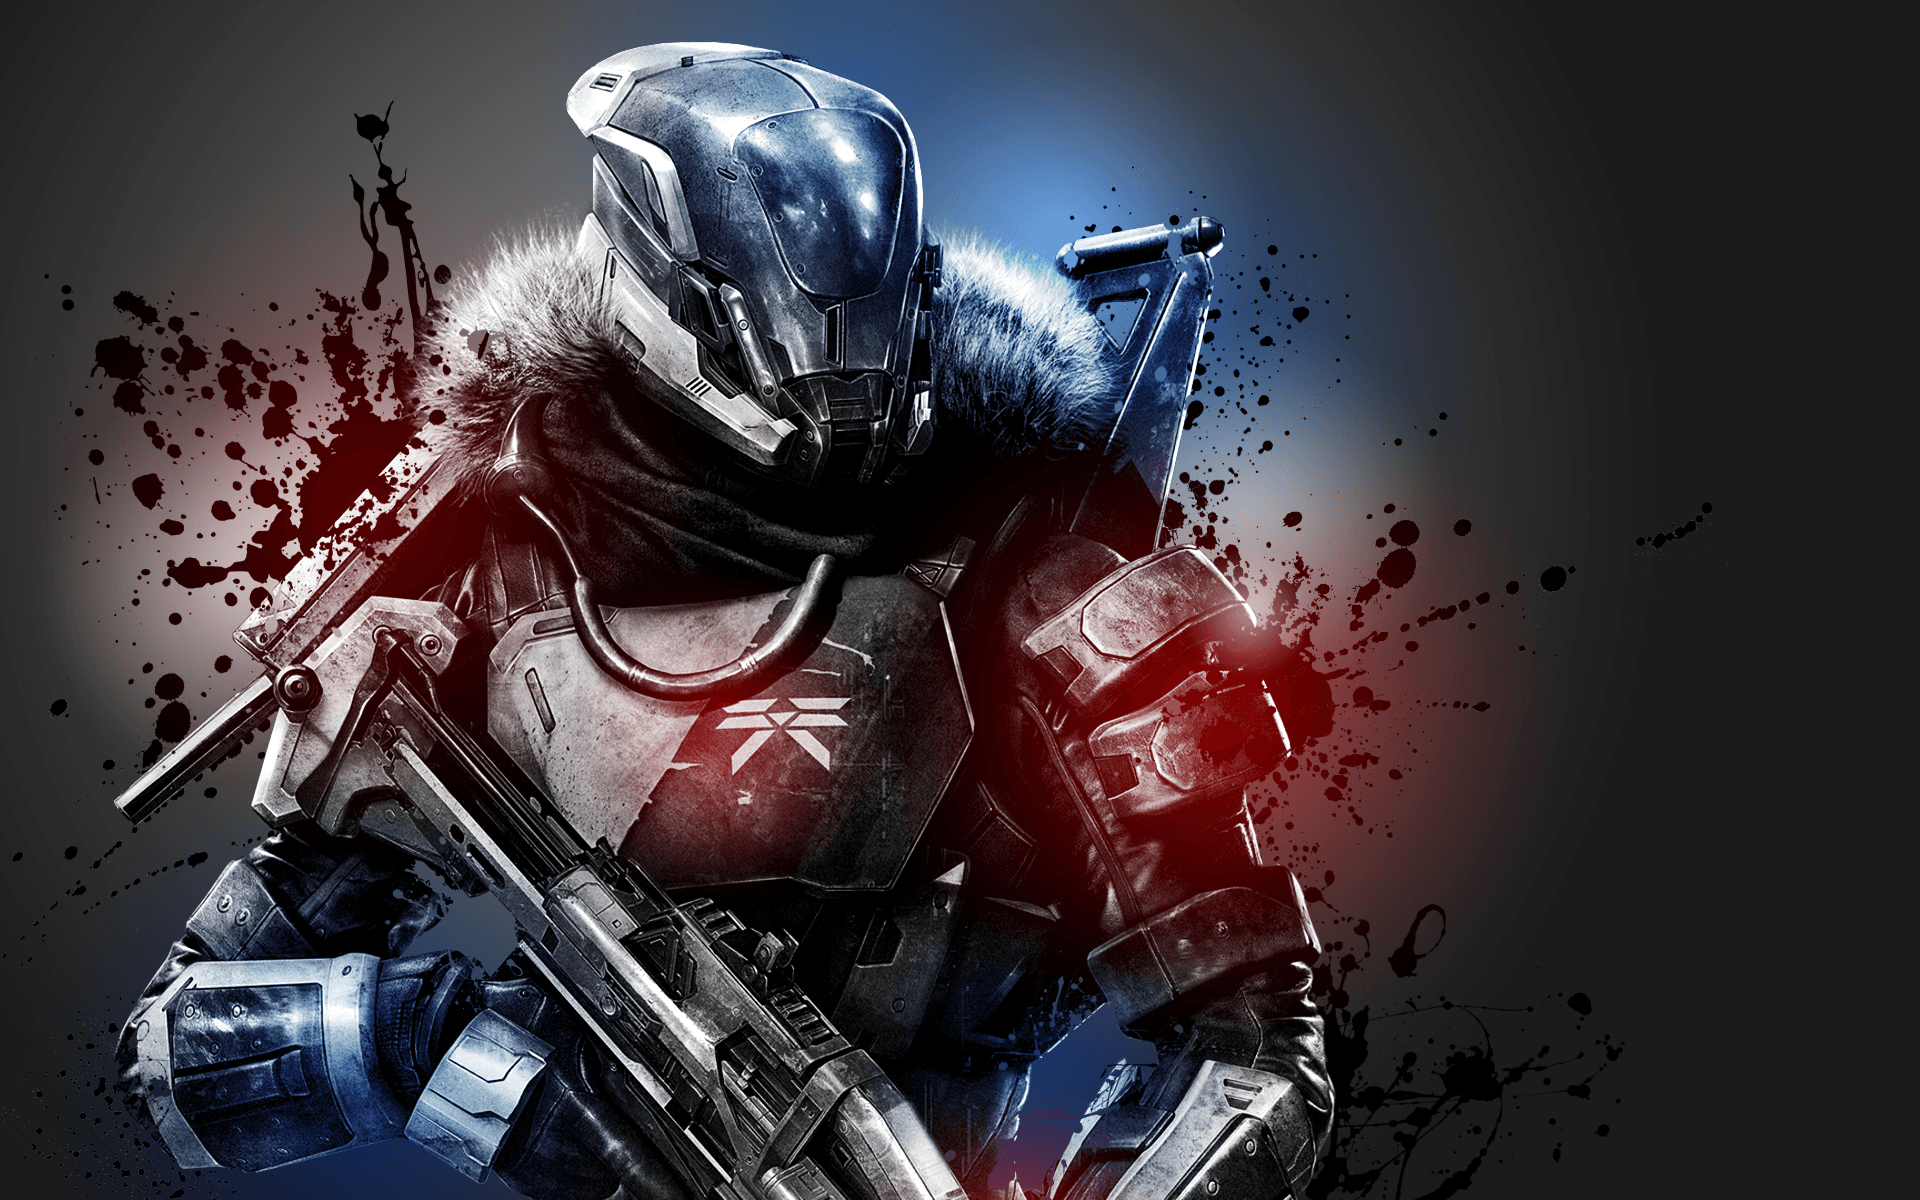 destiny wallpaper 4k,pc game,action adventure game,fictional character,graphic design,shooter game